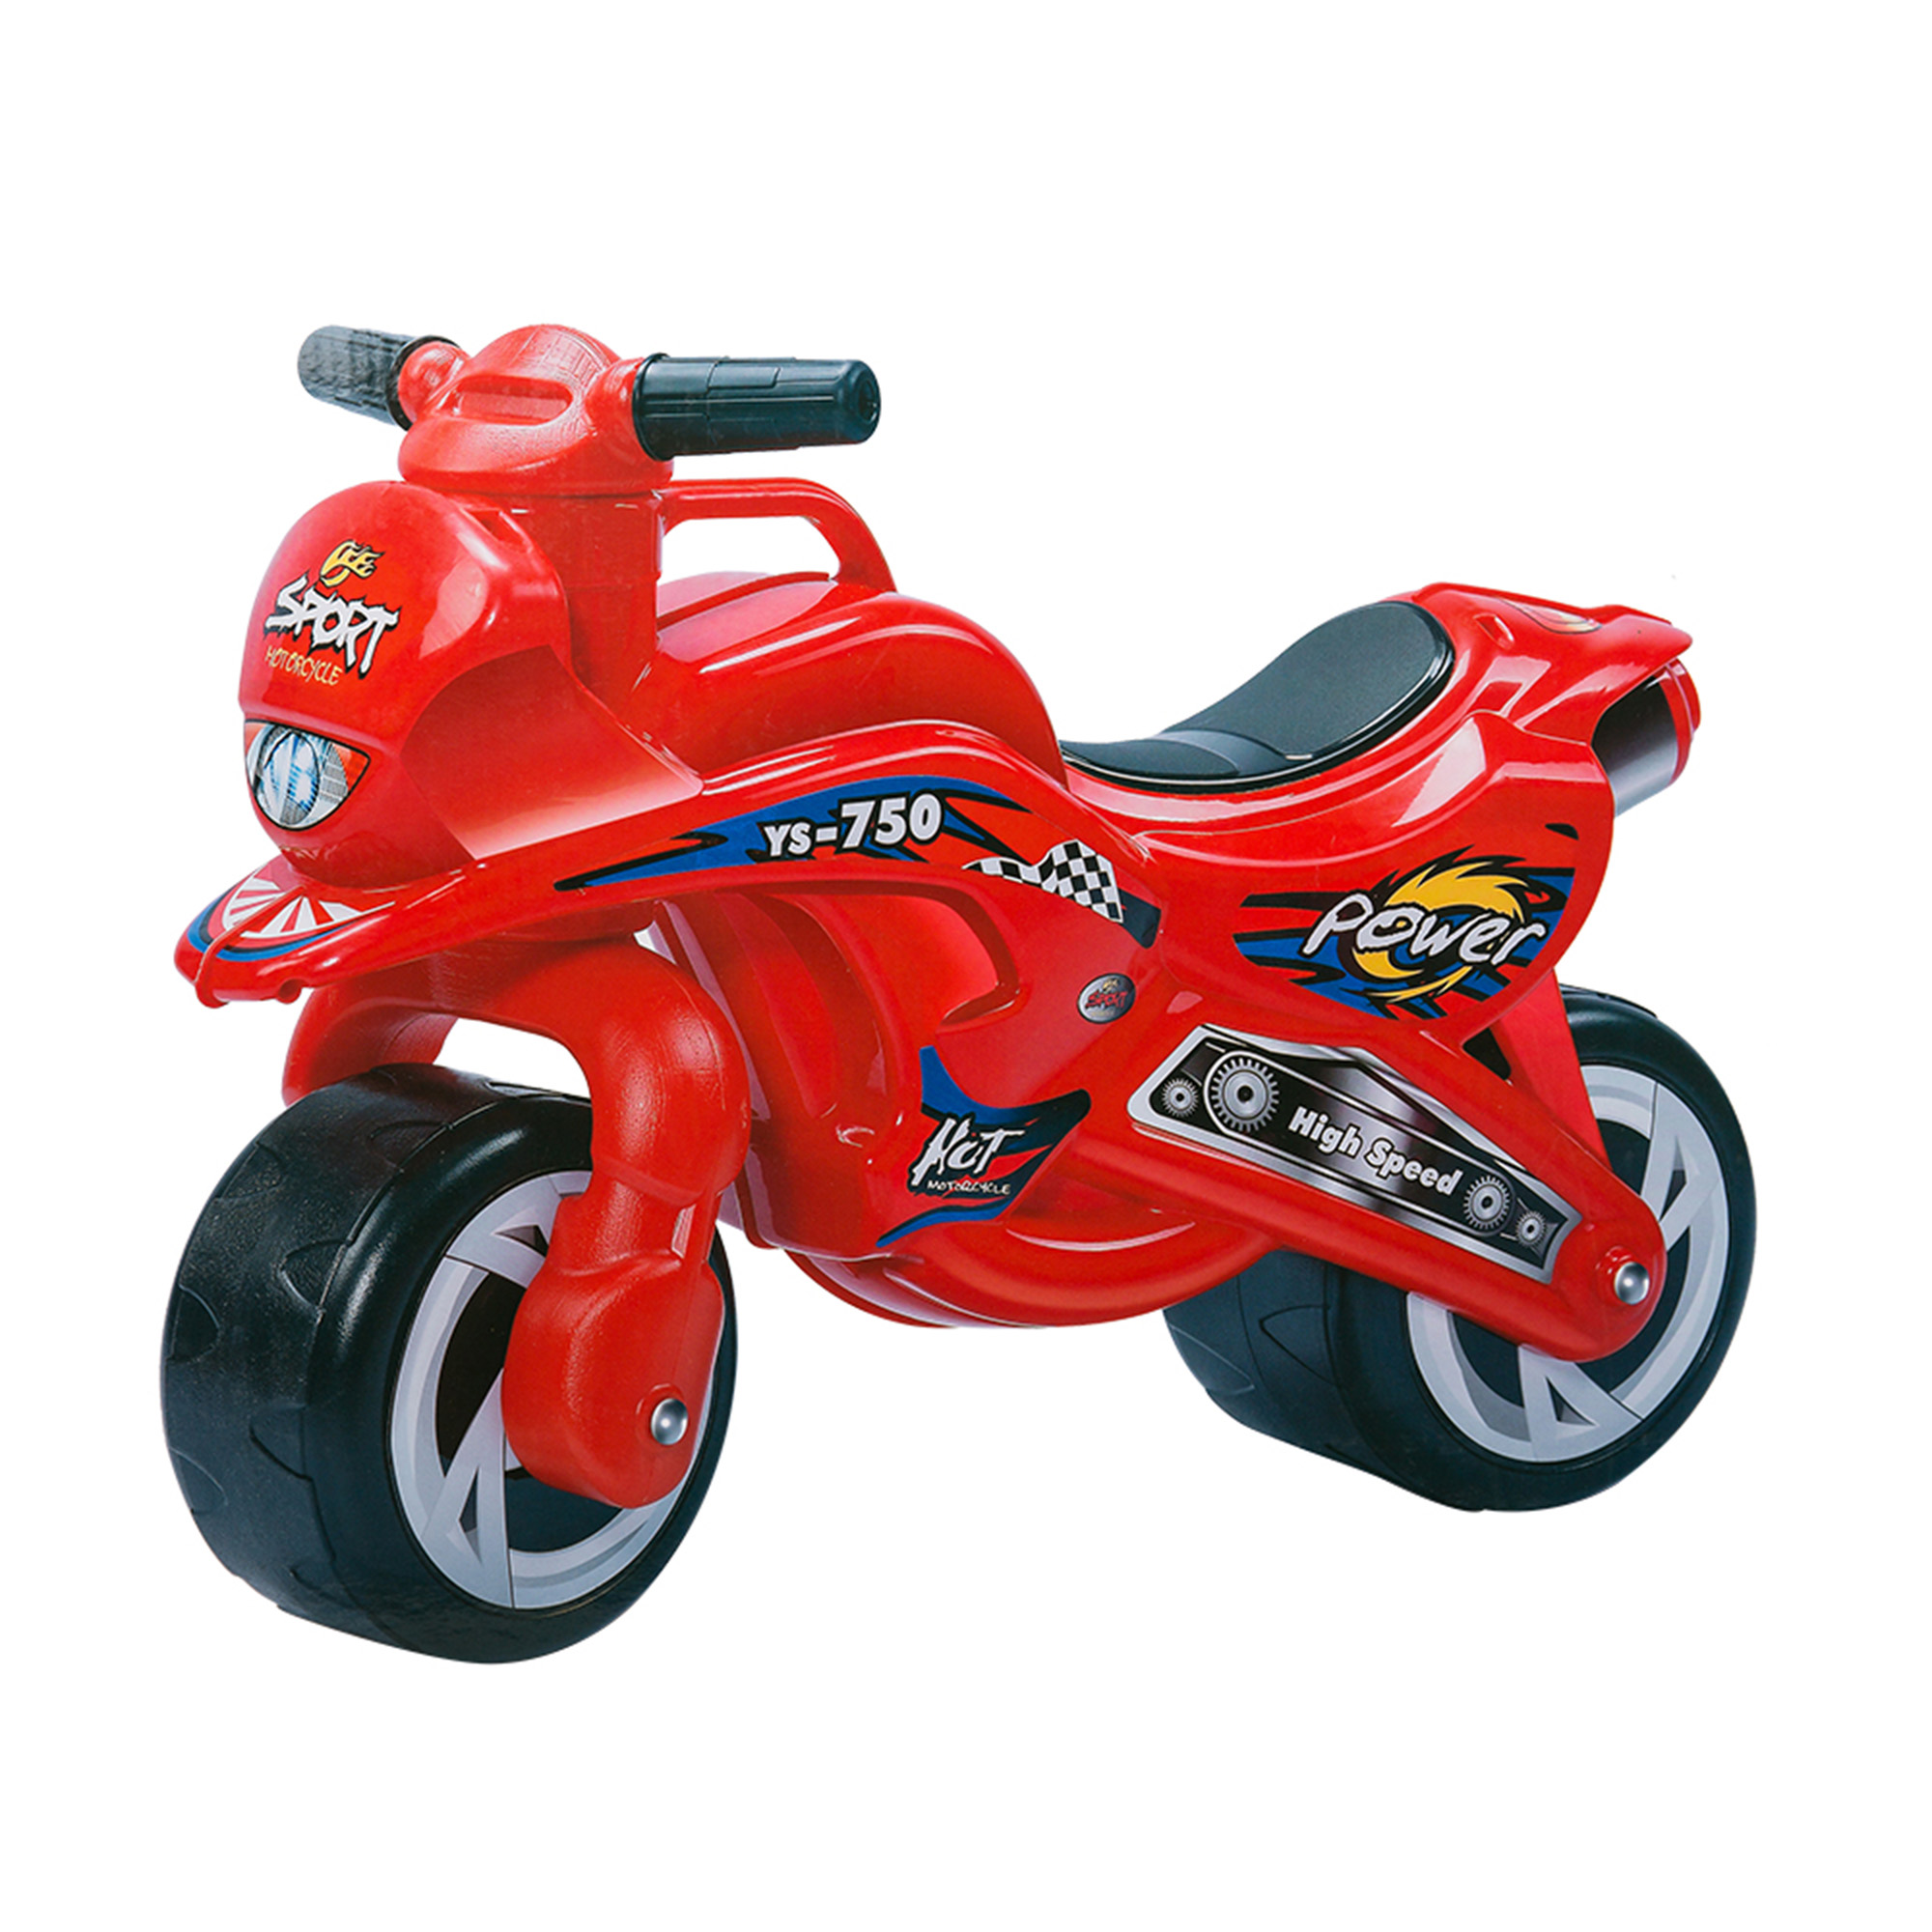 KARMAS PRODUCT Kids Ride On Motorcycle Model Car Toy Red